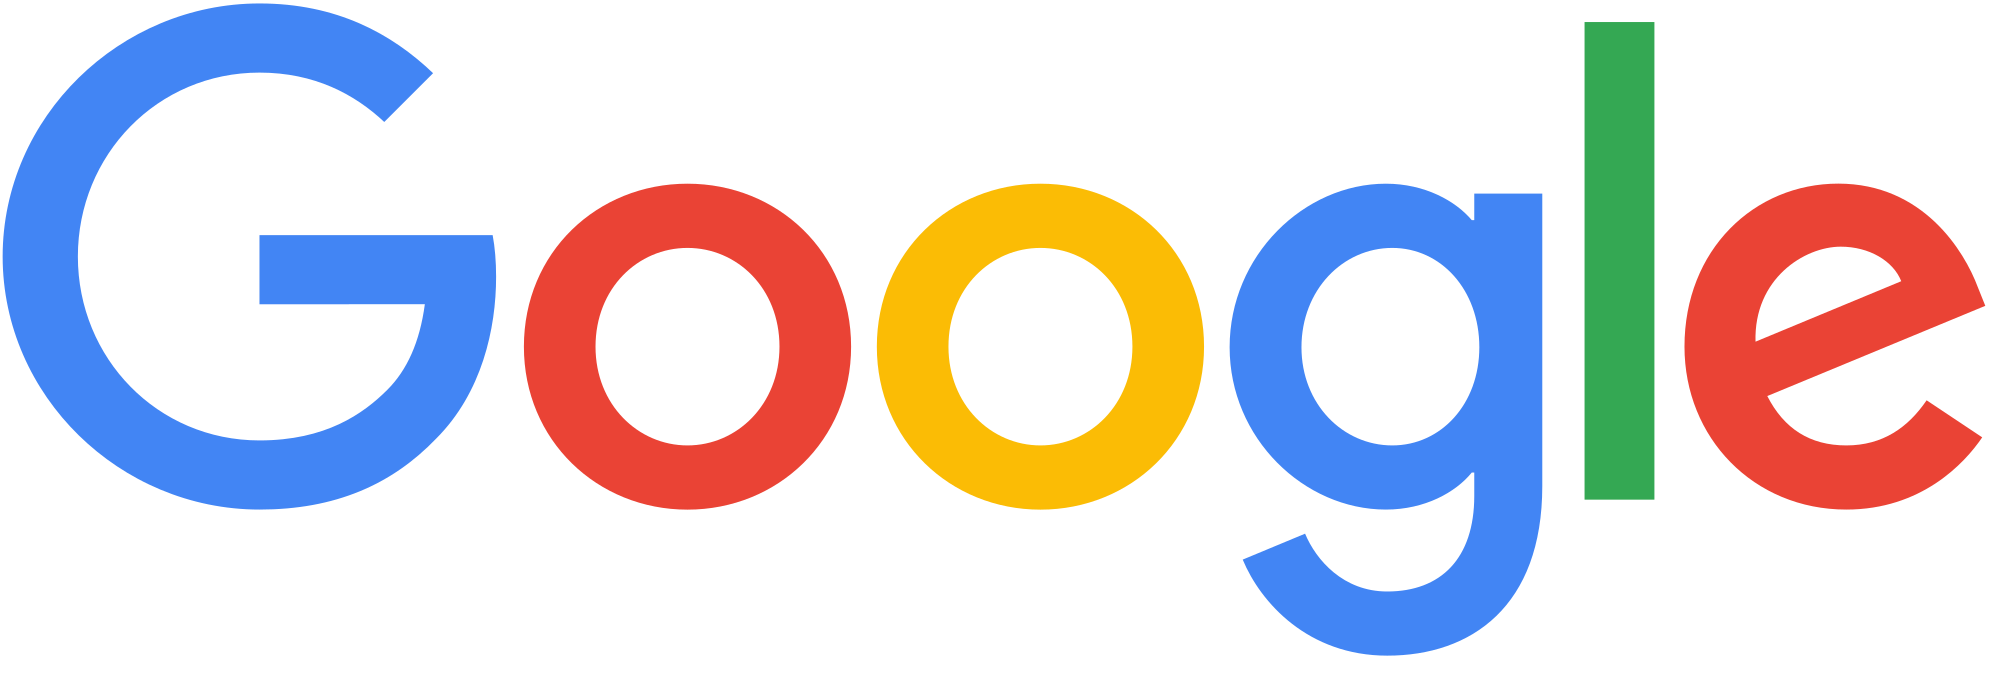 File svg wikimedia commons. Google logo 2016 png jpg freeuse